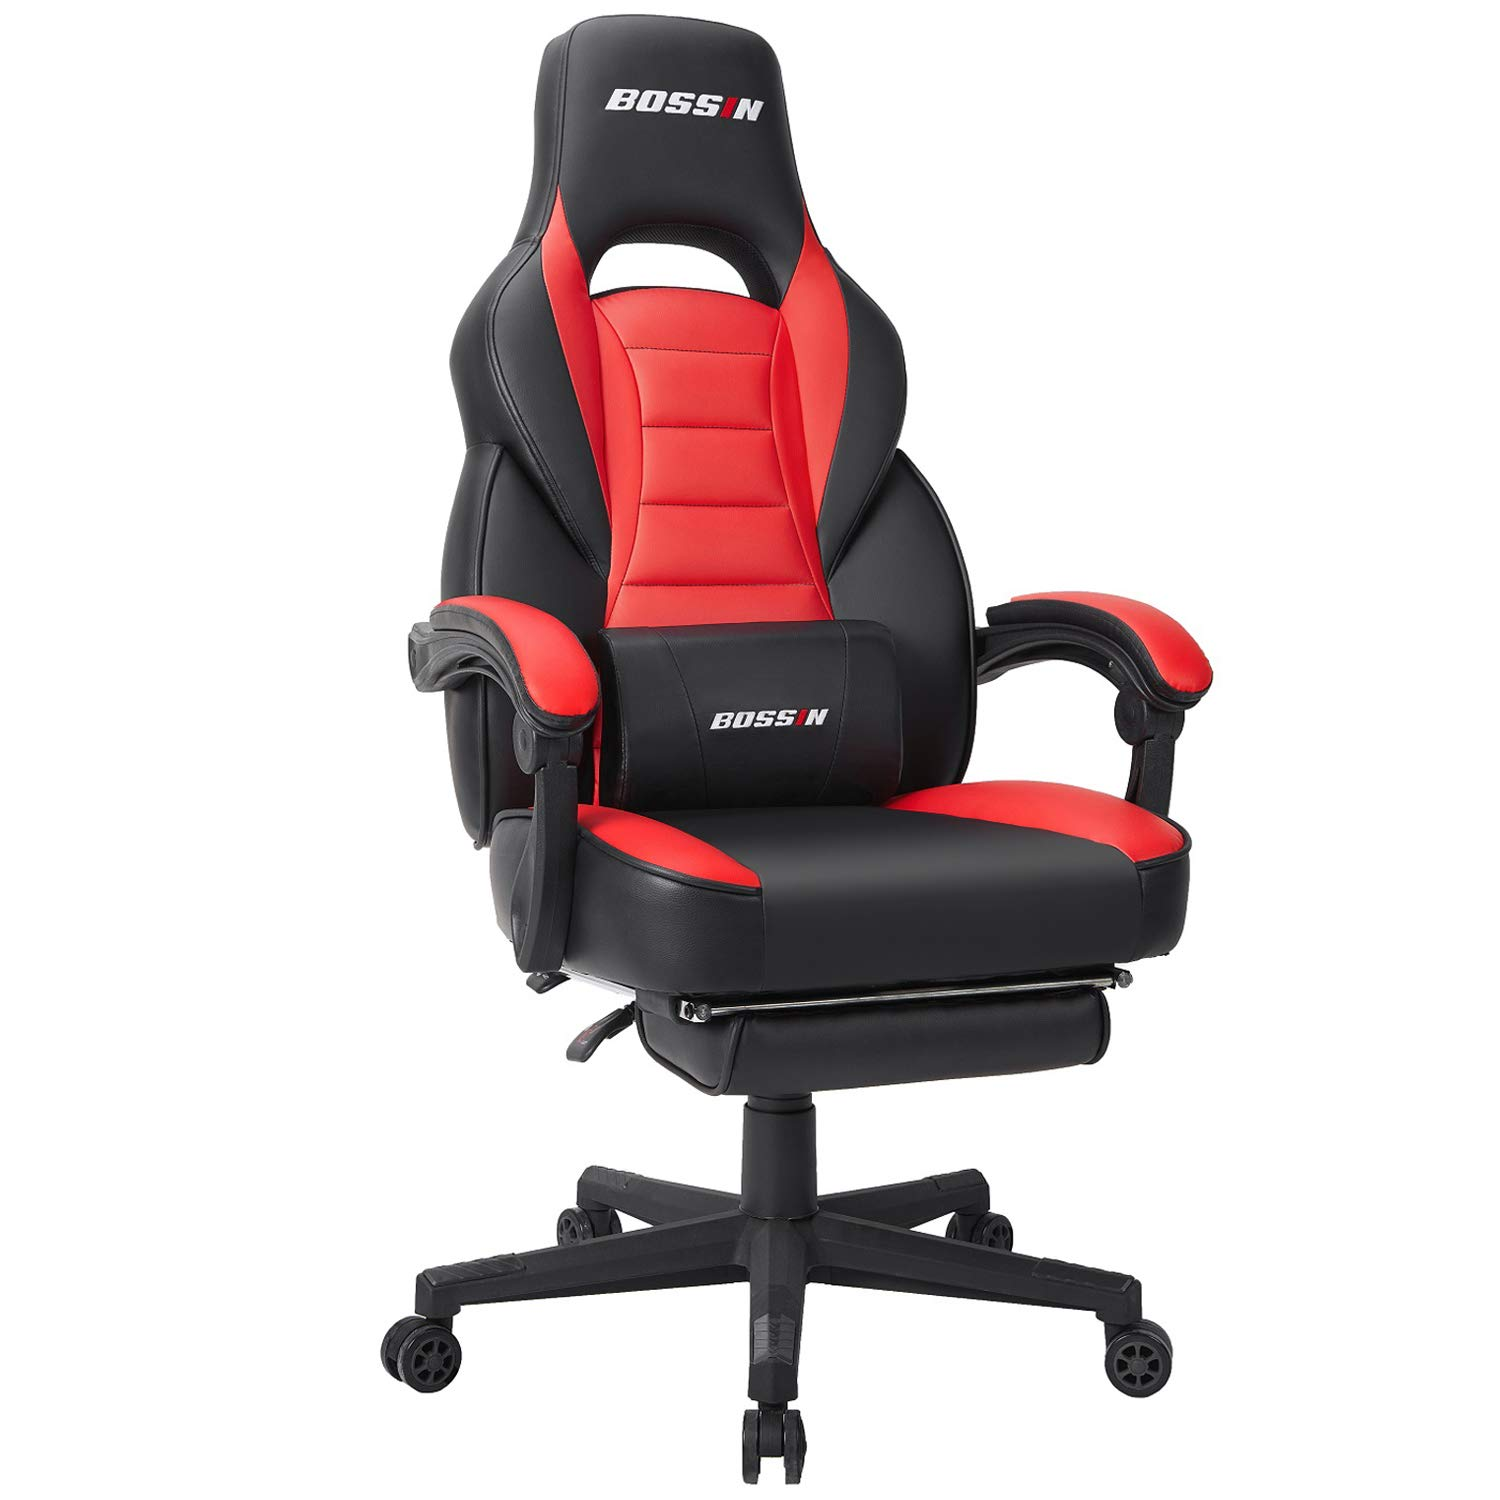 BOSSIN Gaming Chair High Back Racing Chair, Ergonomic Swivel Computer Chair Executive Leather Desk Chair with Footrest, Bucket Seat and Lumbar Support (Red)